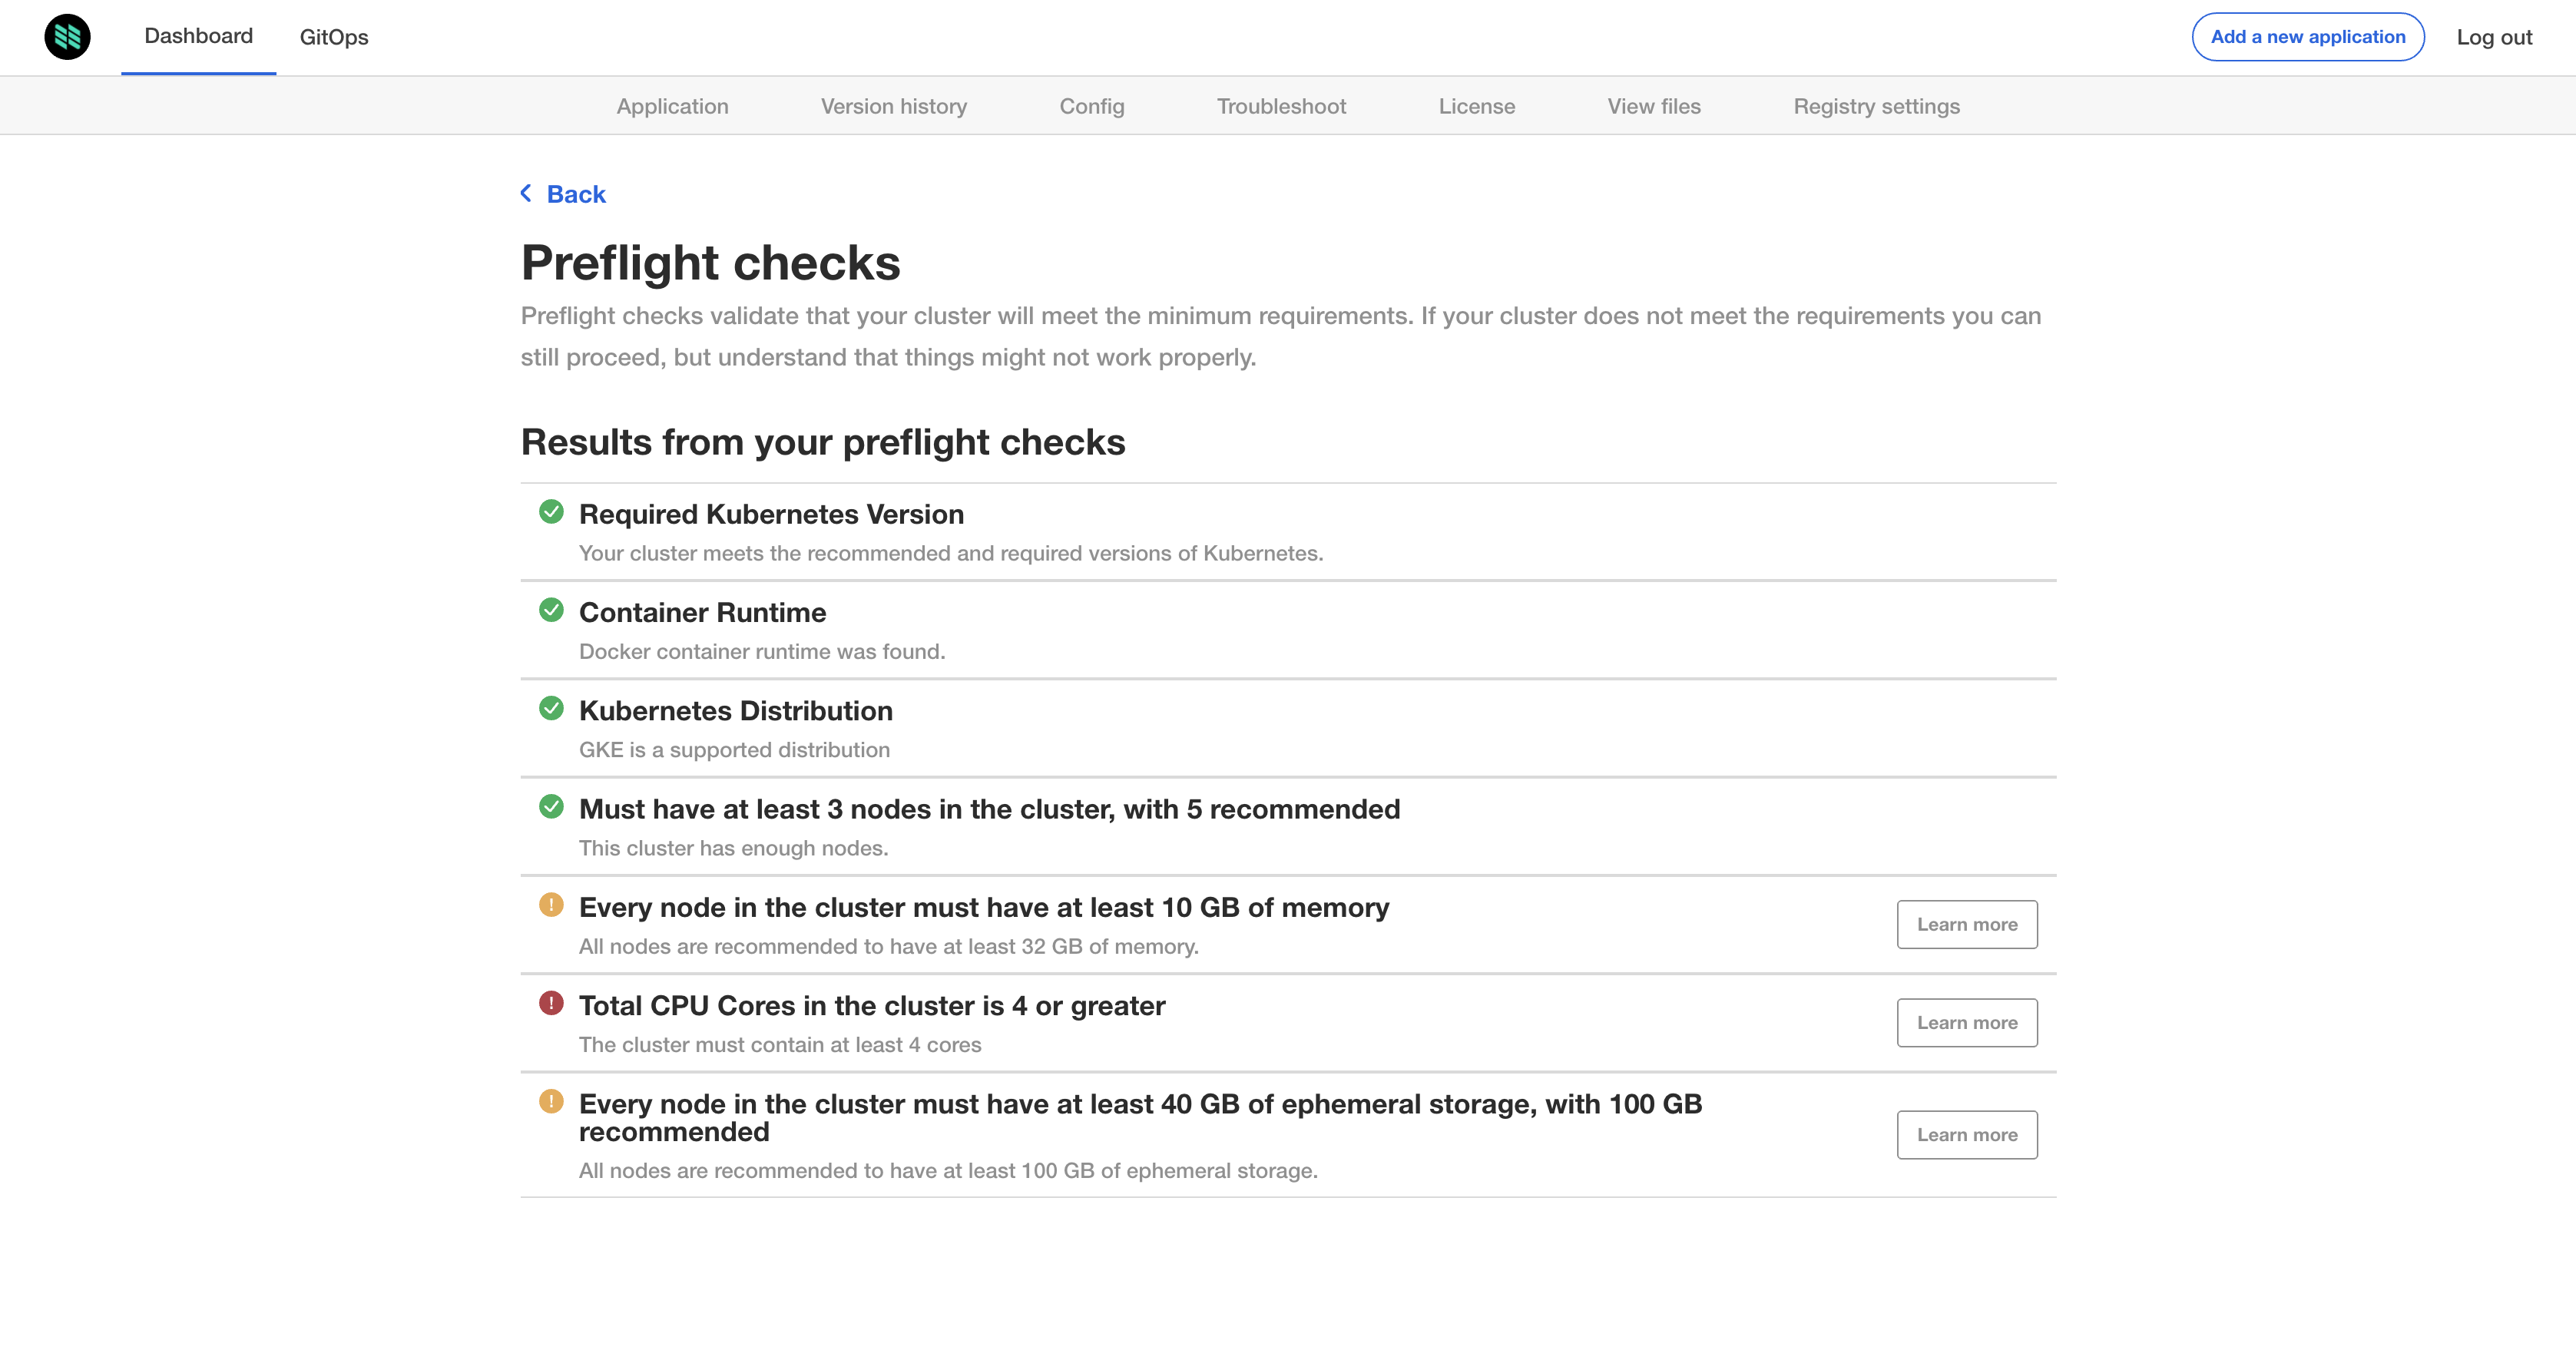 Unsuccessful preflight check will not allow you to update